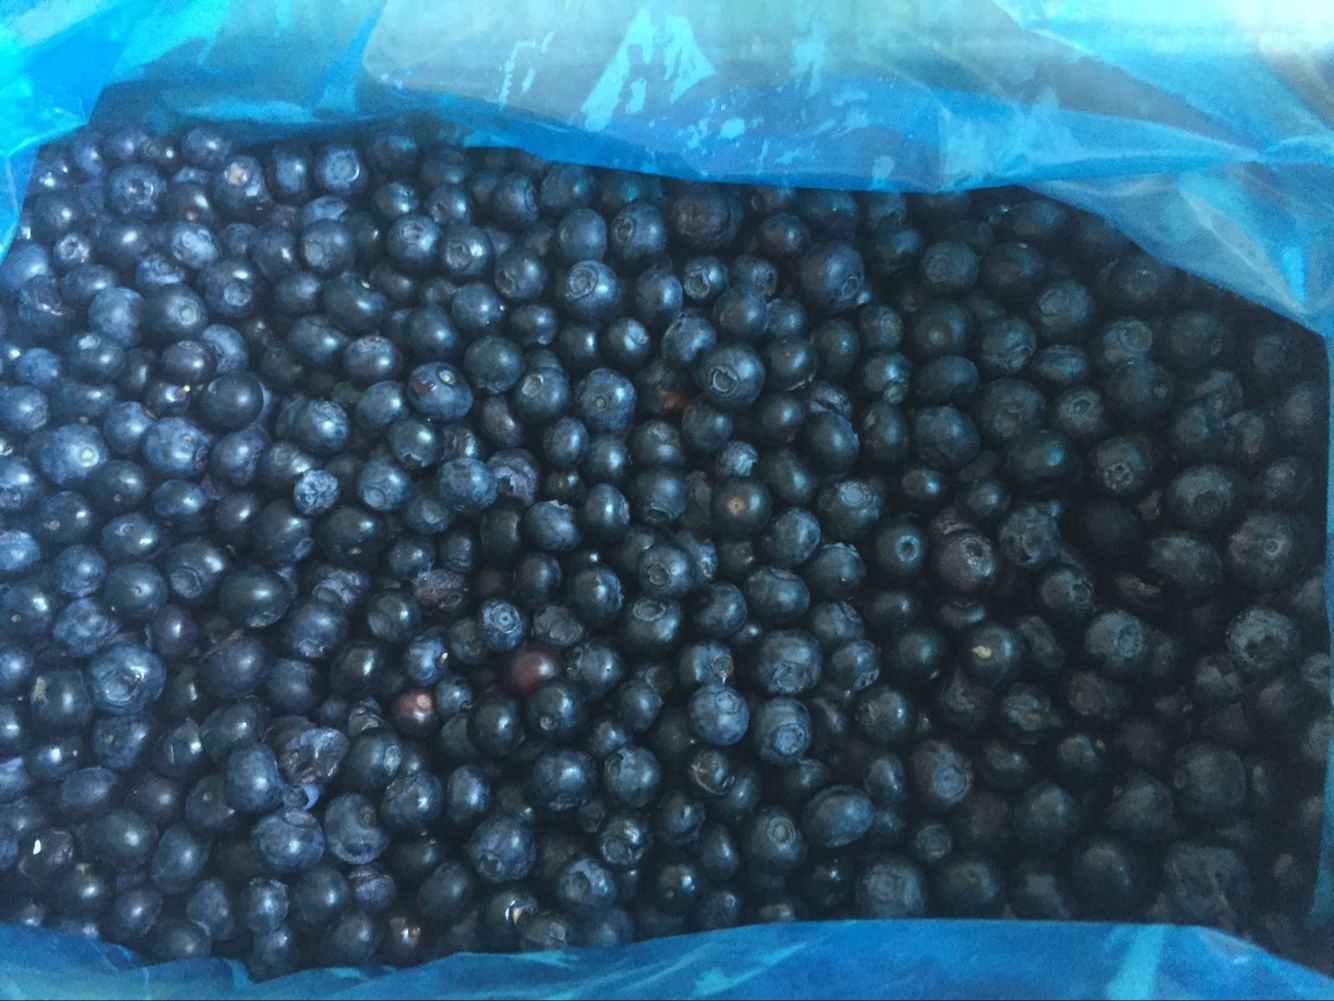 frozen blueberry, iqf blueberry, blueberry